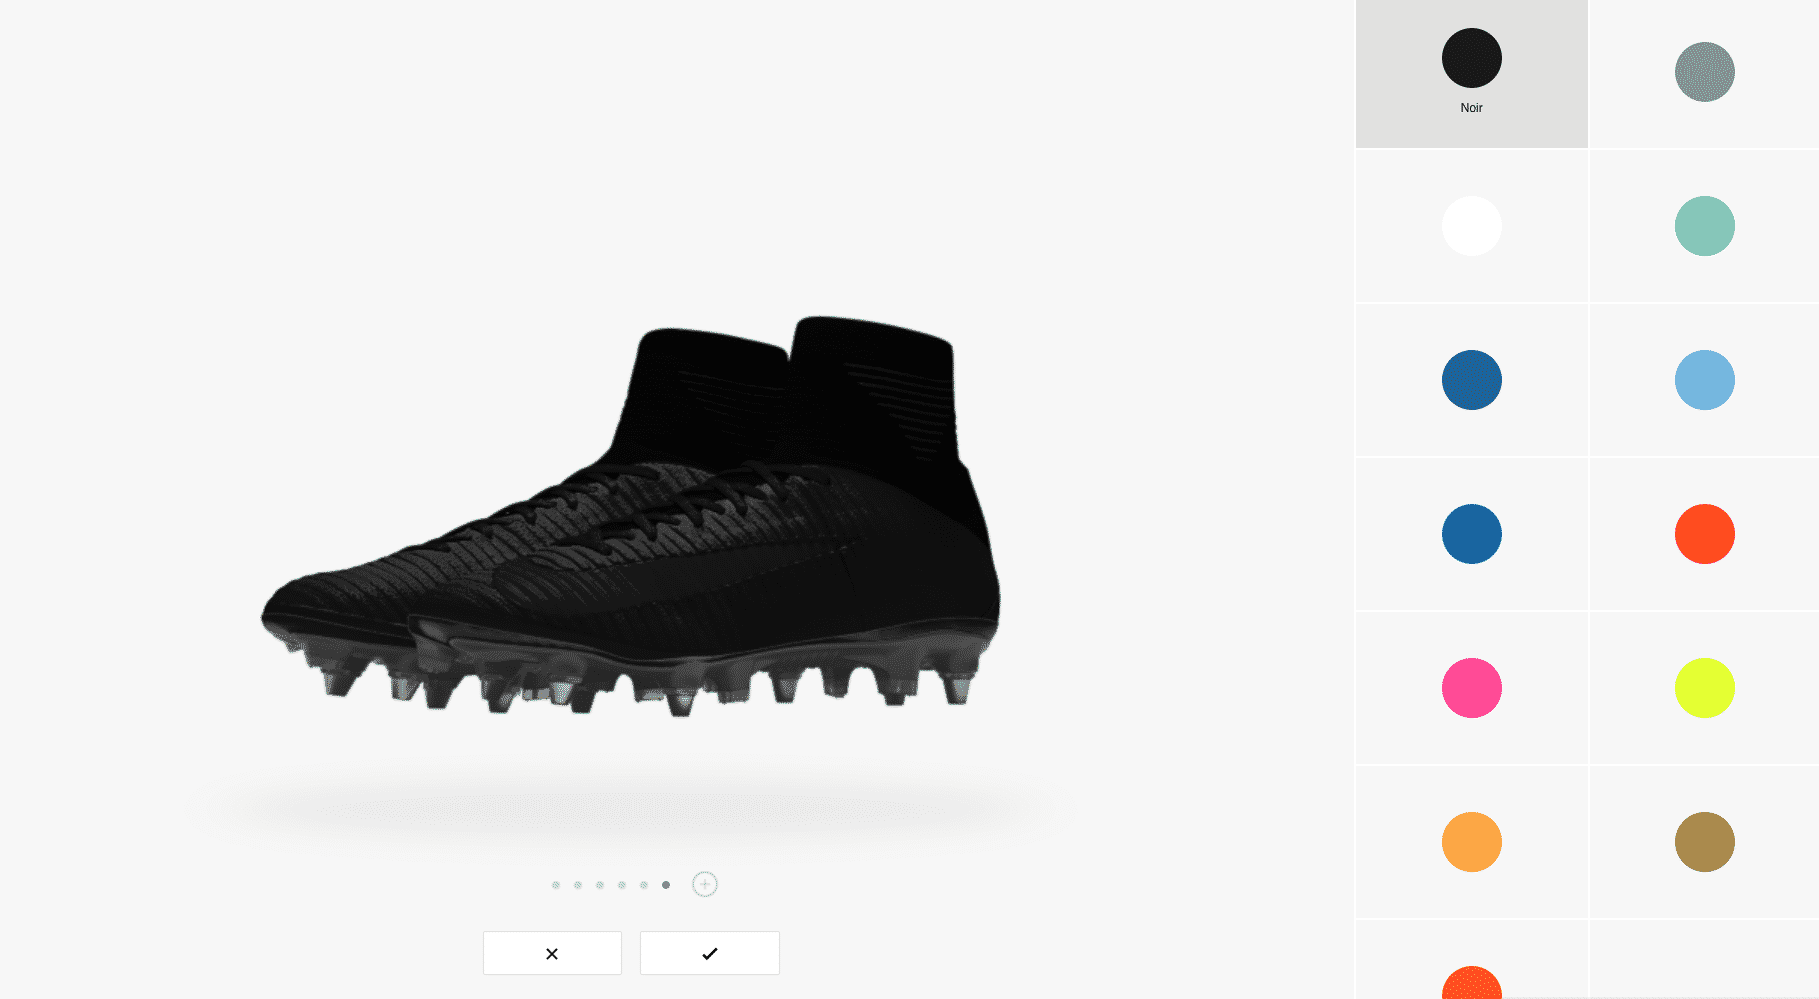 chaussure-football-nike-tech-craft-id-img18